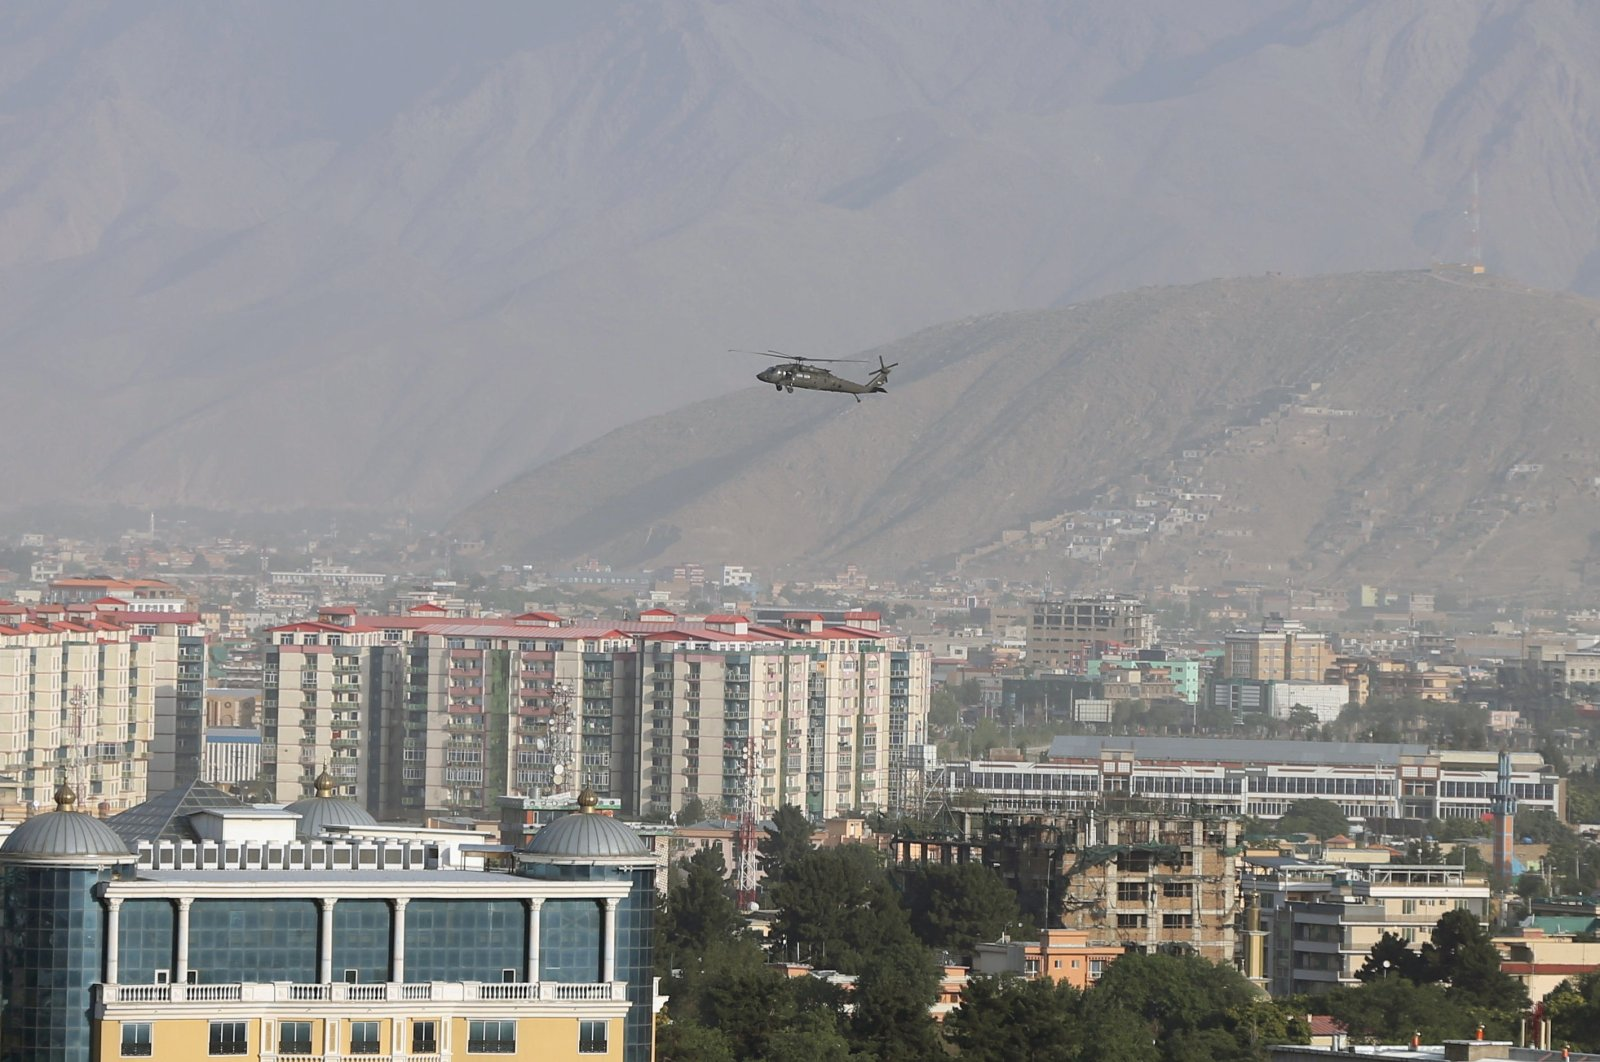 A NATO helicopter flies over the city of Kabul, Afghanistan, June 29, 2020. (REUTERS Photo)